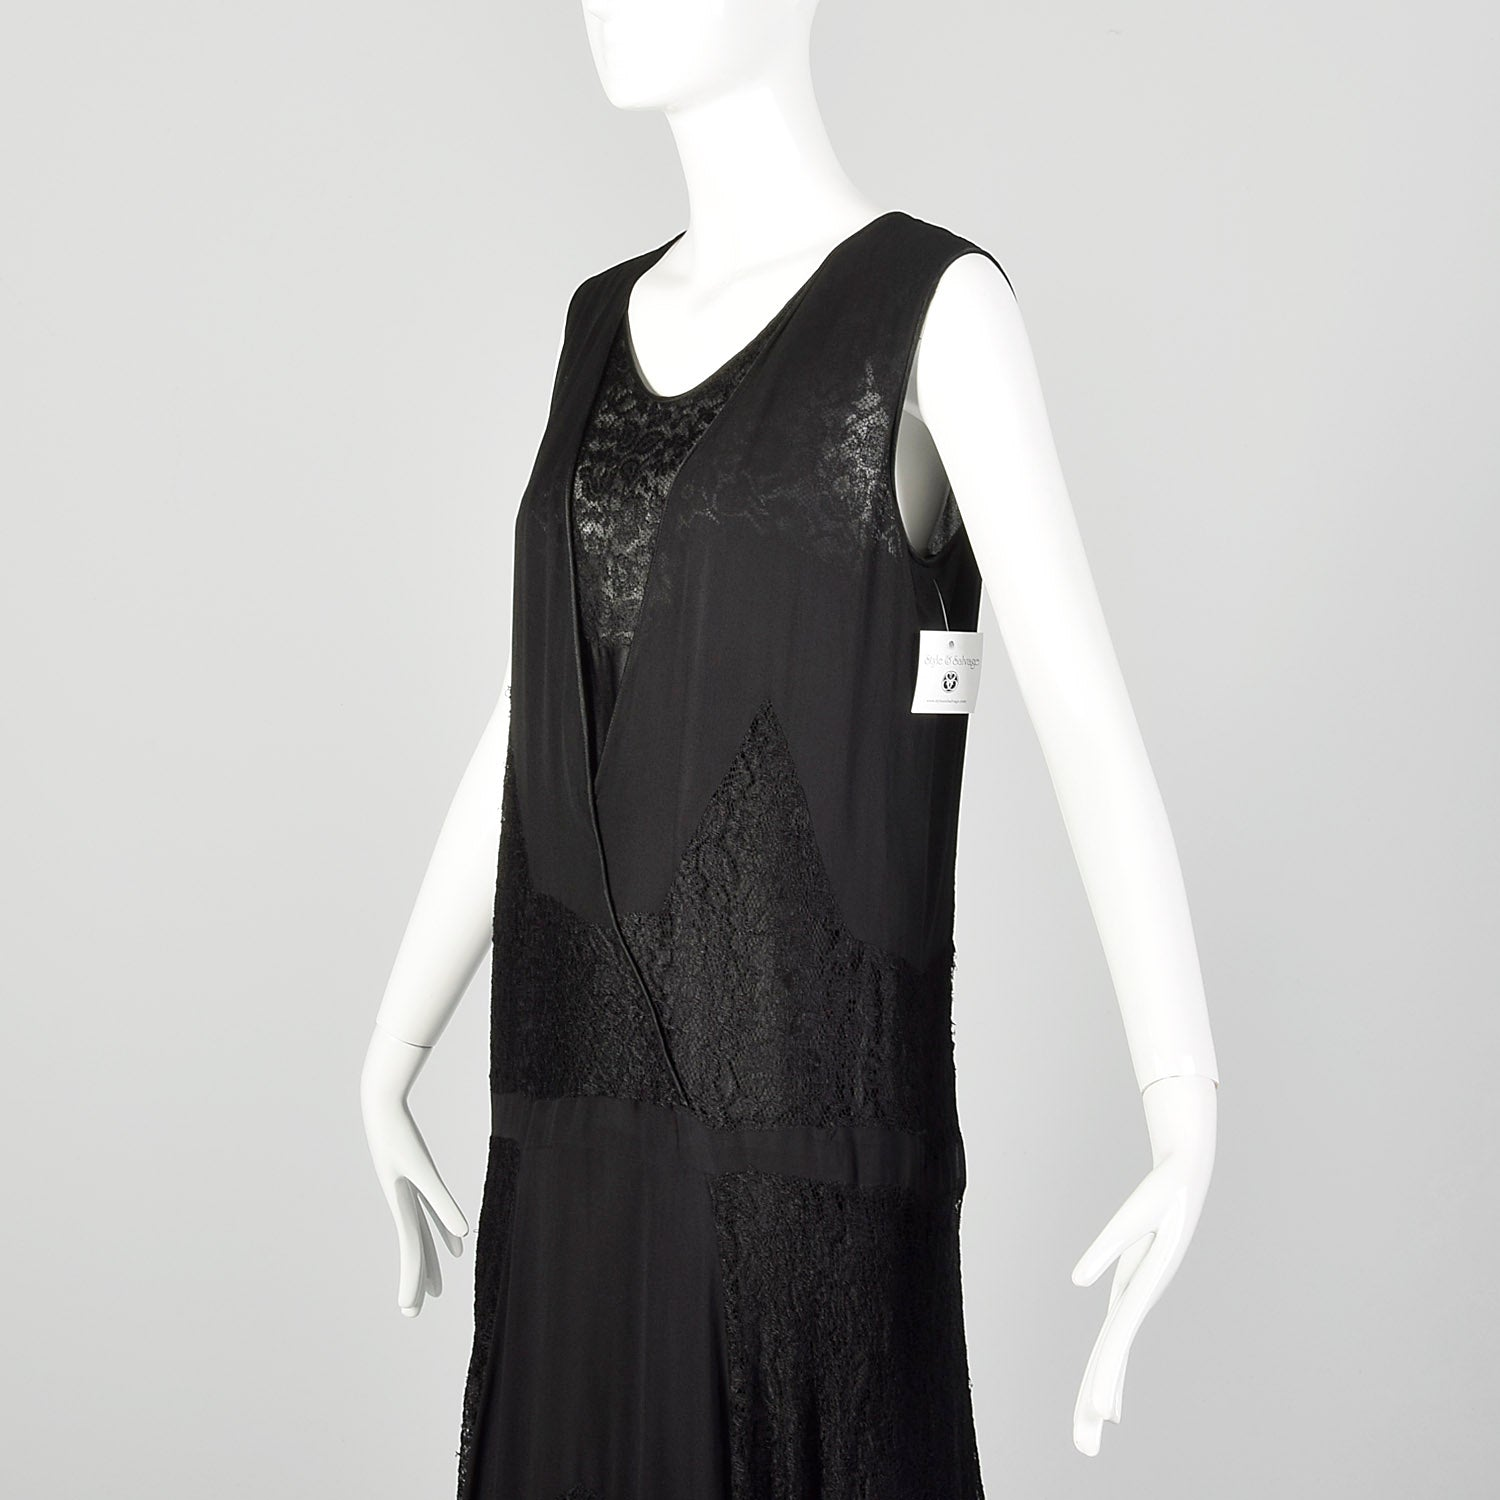 Medium 1920s Black Silk Dress Lace Panel Elegant Sleeveless Evening